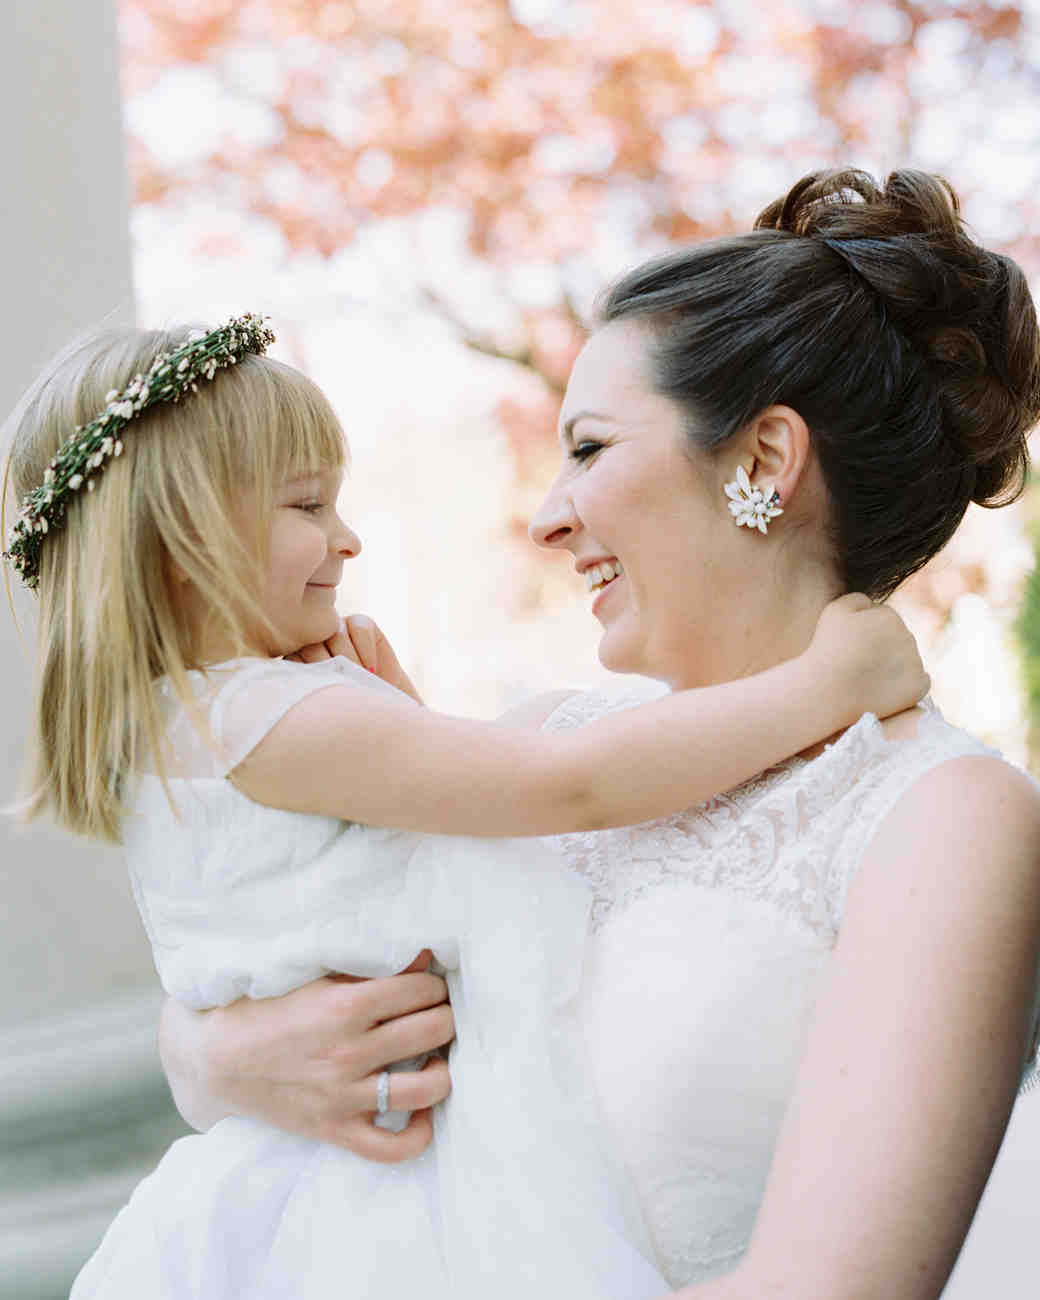 7 Ways to Keep Flower Girls and Ring Bearers Happy | Martha Stewart Weddings